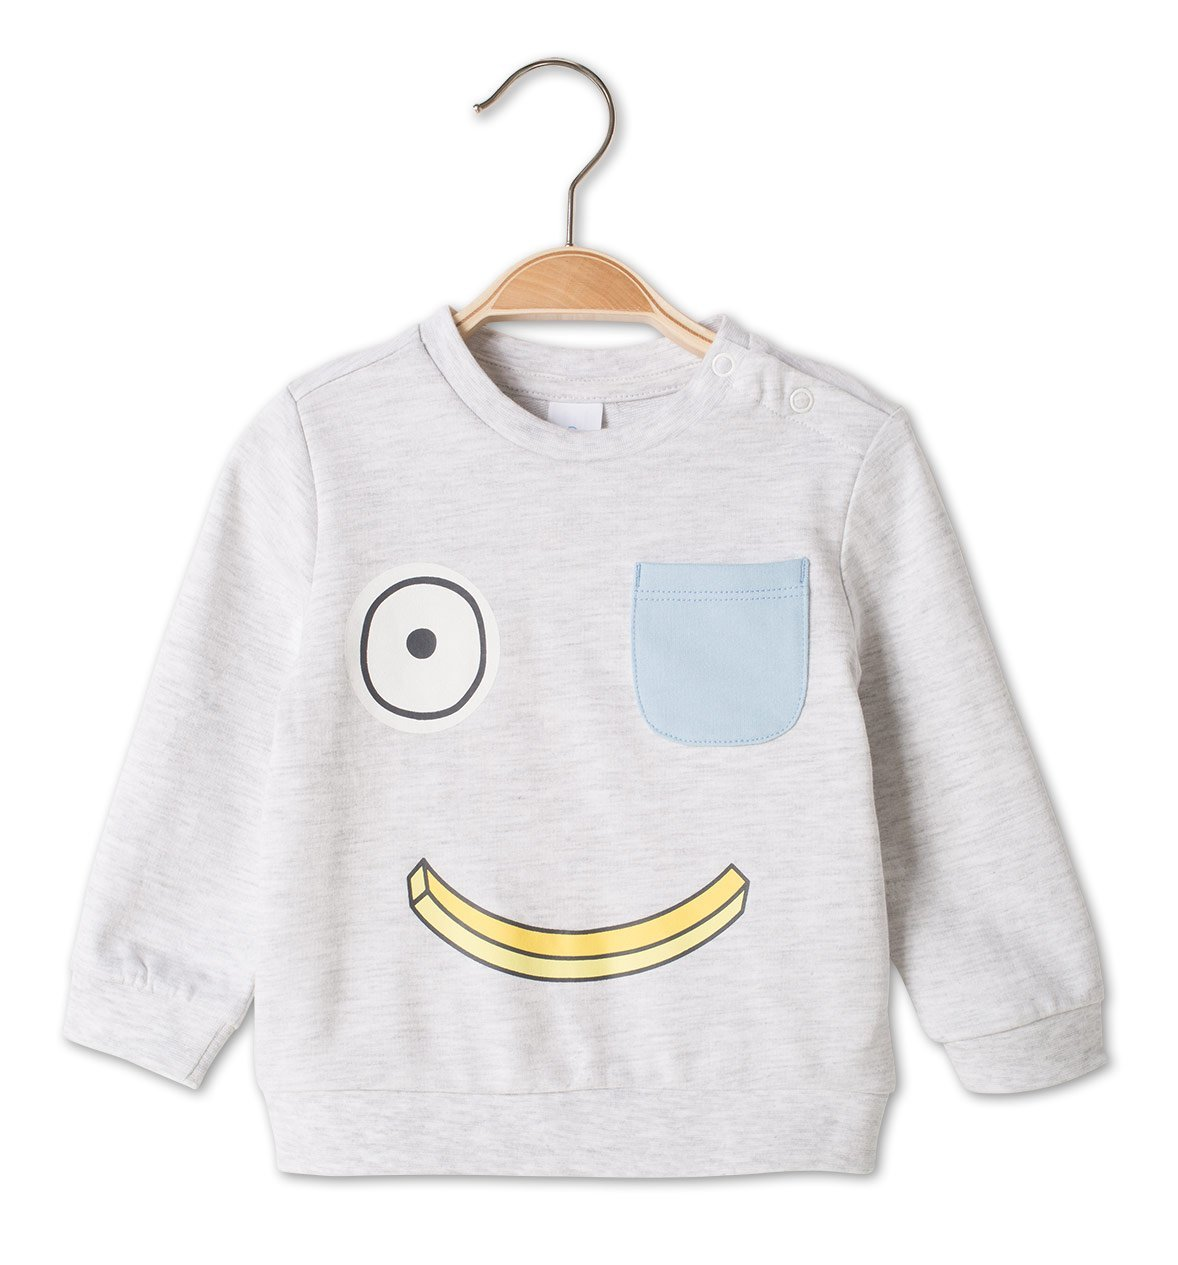 Smile bananen sweater mini foodies sweater favorieten foodblog Foodinista lentekleding voor mini foodies